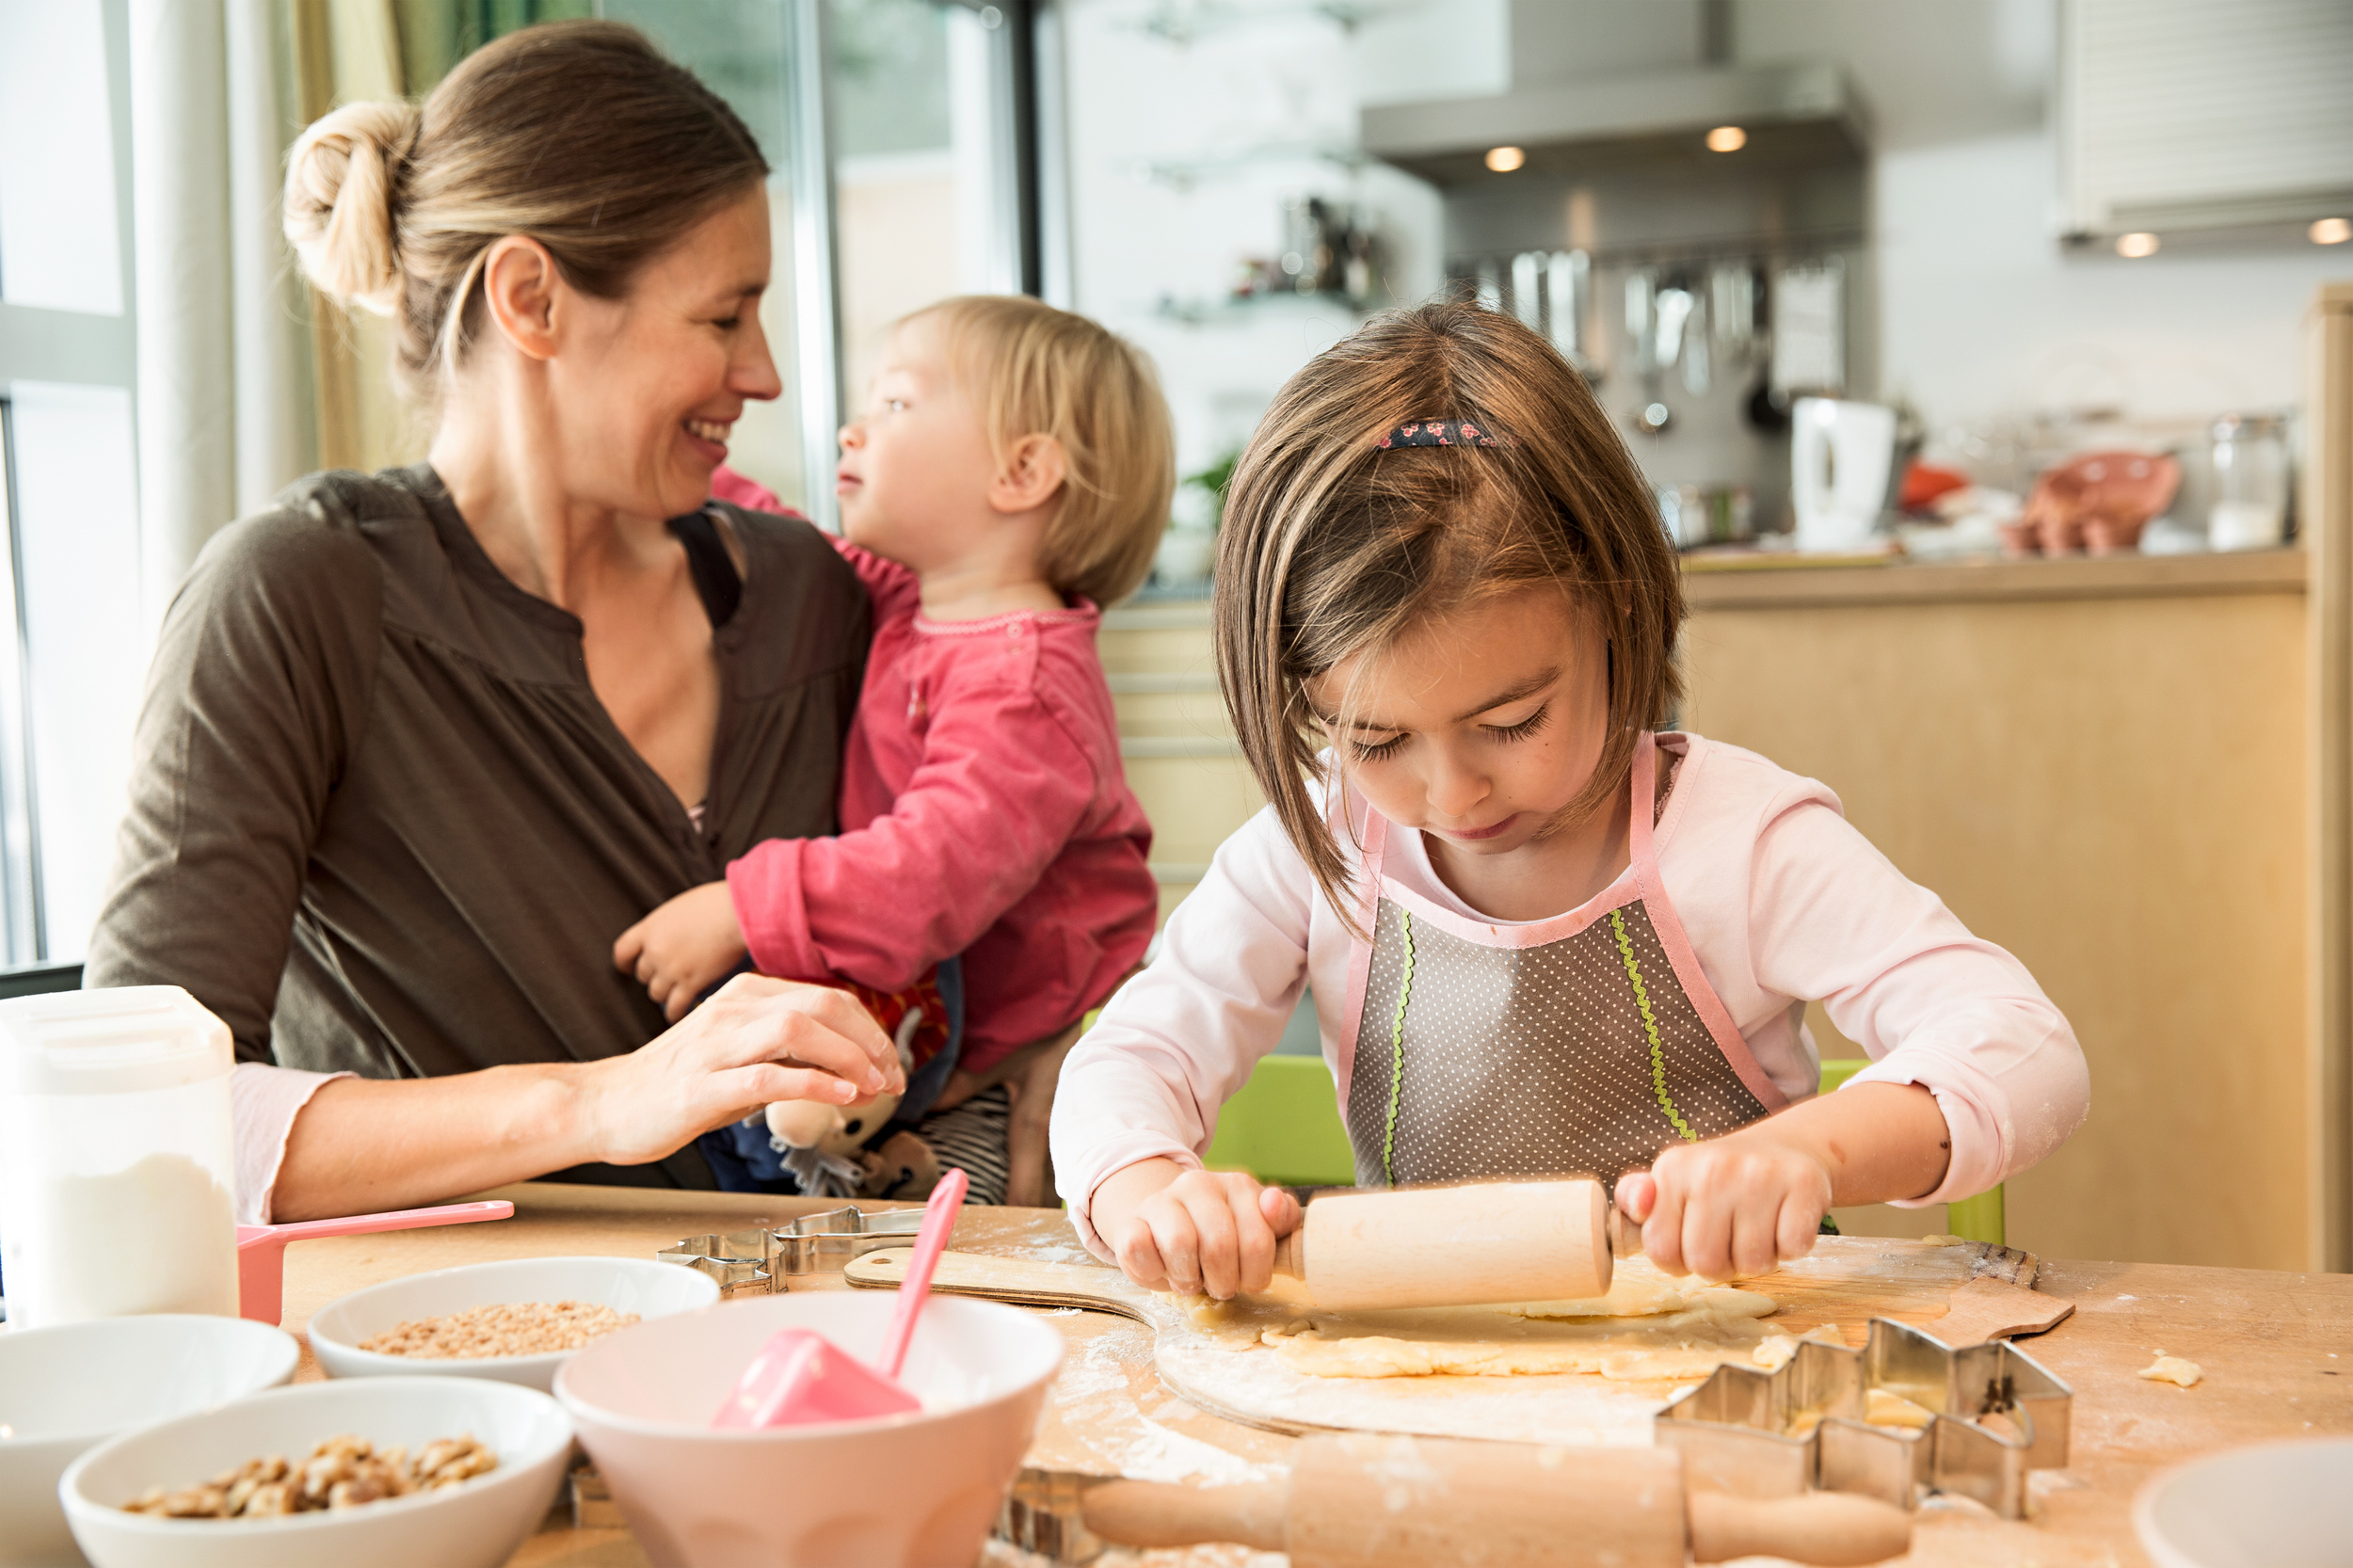 working mother should stay at home to raise their children A new study shows that whether mothers work outside the home has no negative effect on their children a stay-at-home mother work should stop.